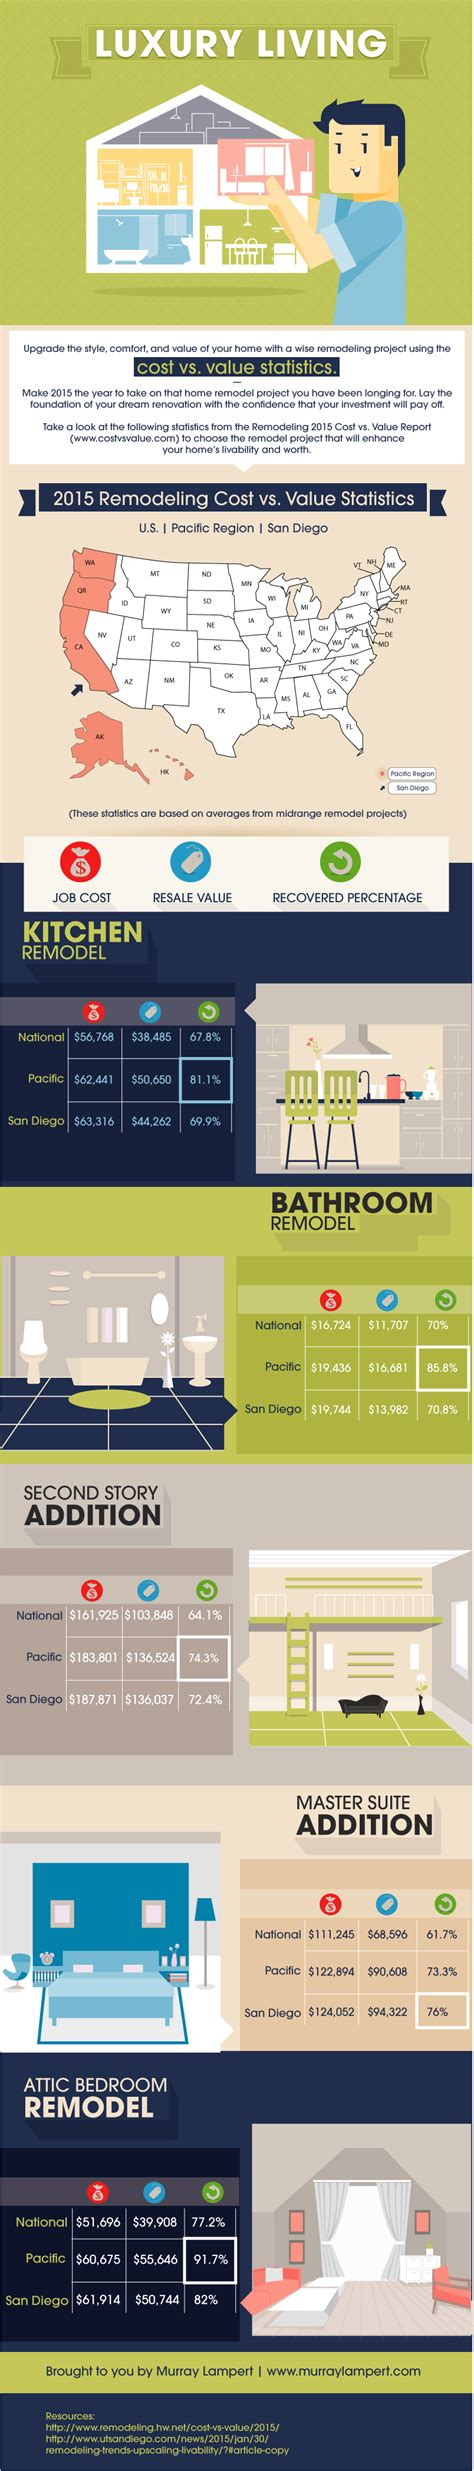 infographic luxury living cost vs value of home